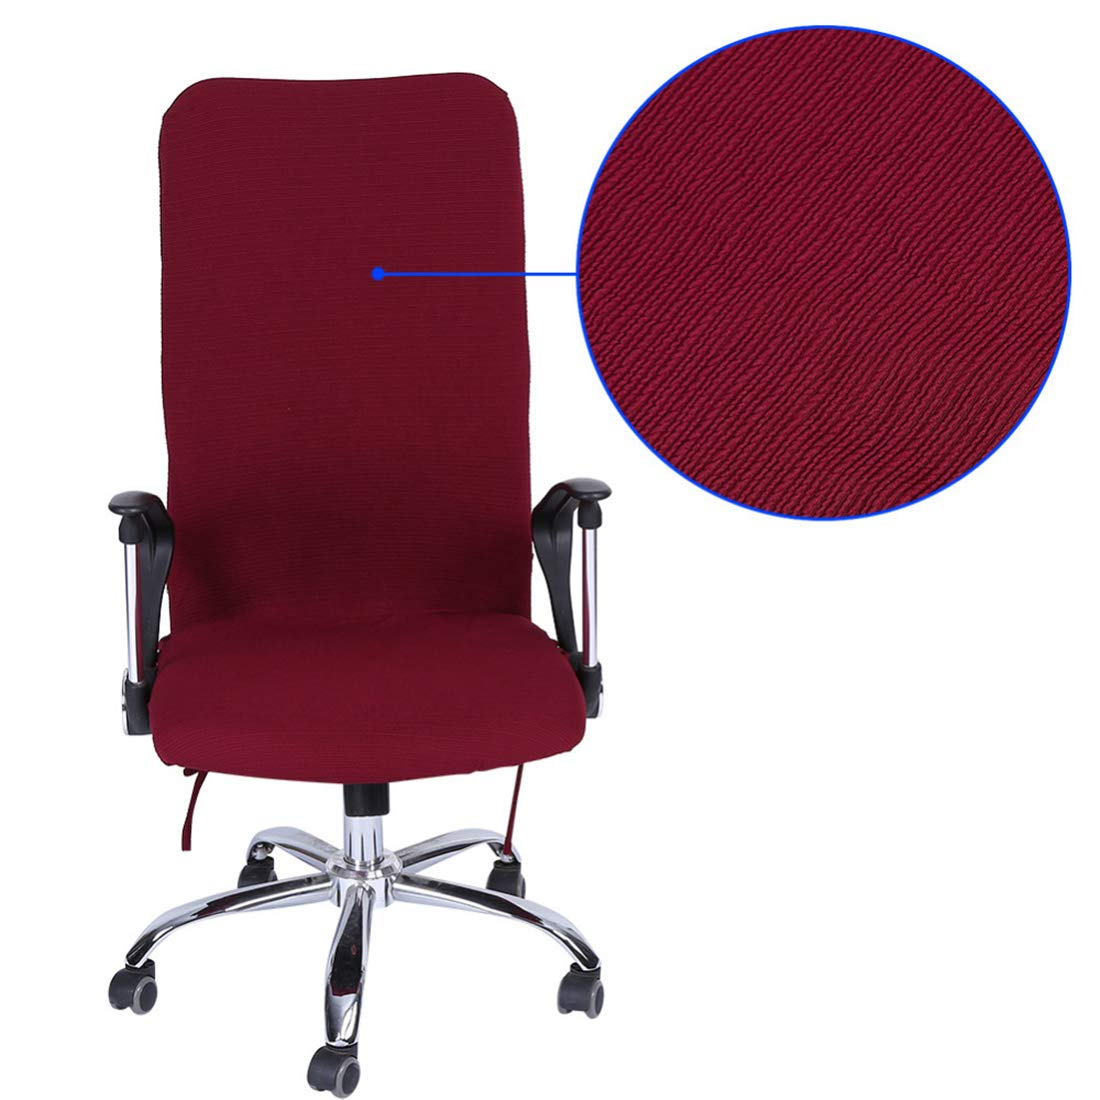 Home & Garden Fashion Checked Computer Office Chair Cover Side Print Arm Chair Cover Seat Slipcover Stretch Rotating Lift Chair Covers